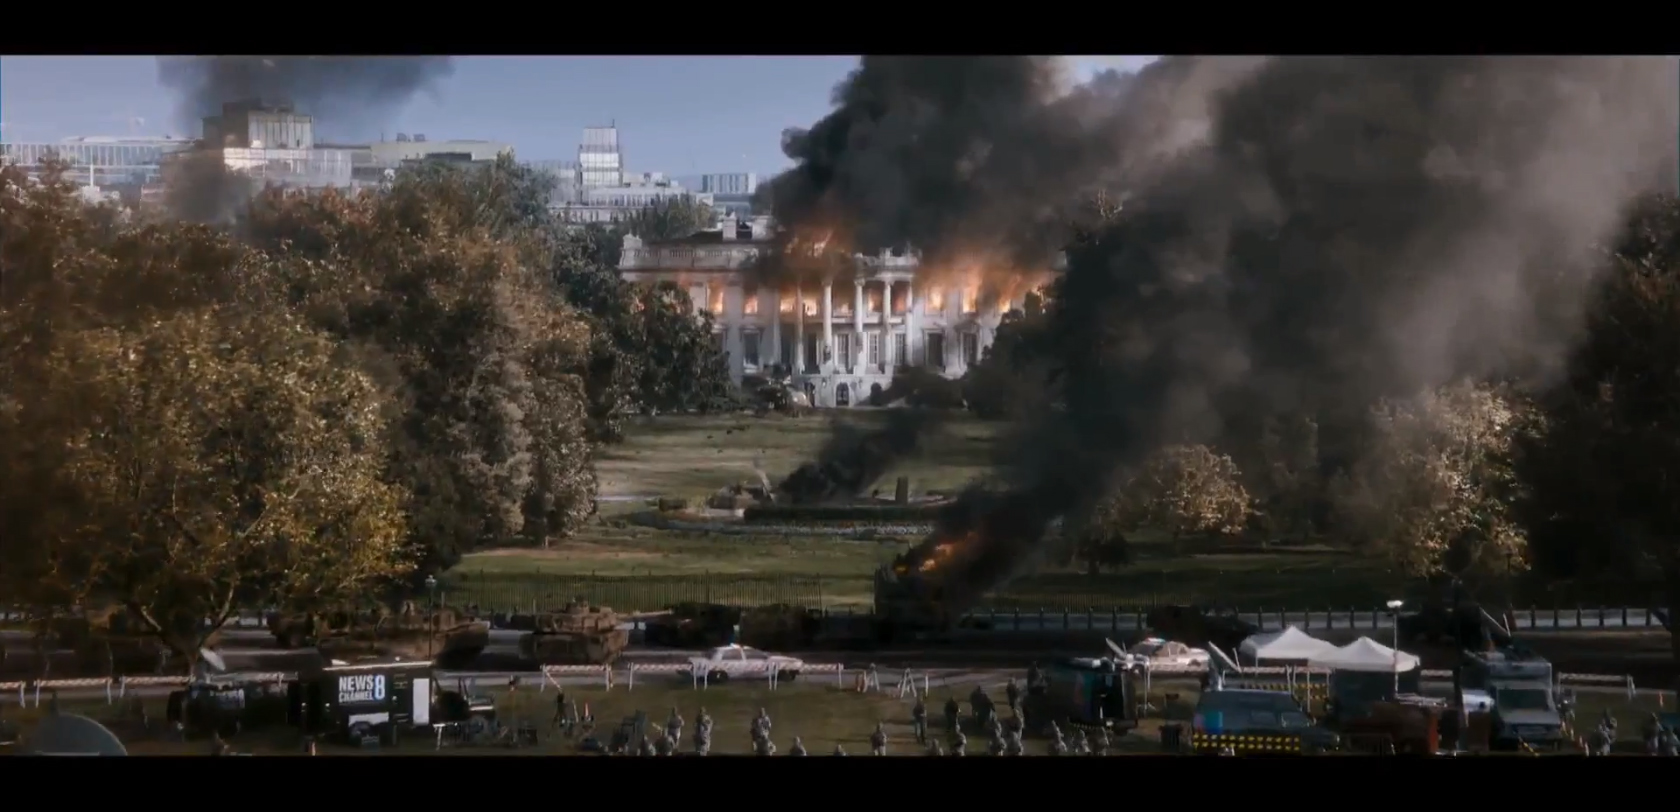 white house down trailer 1 review tim 39 s film reviews. Black Bedroom Furniture Sets. Home Design Ideas